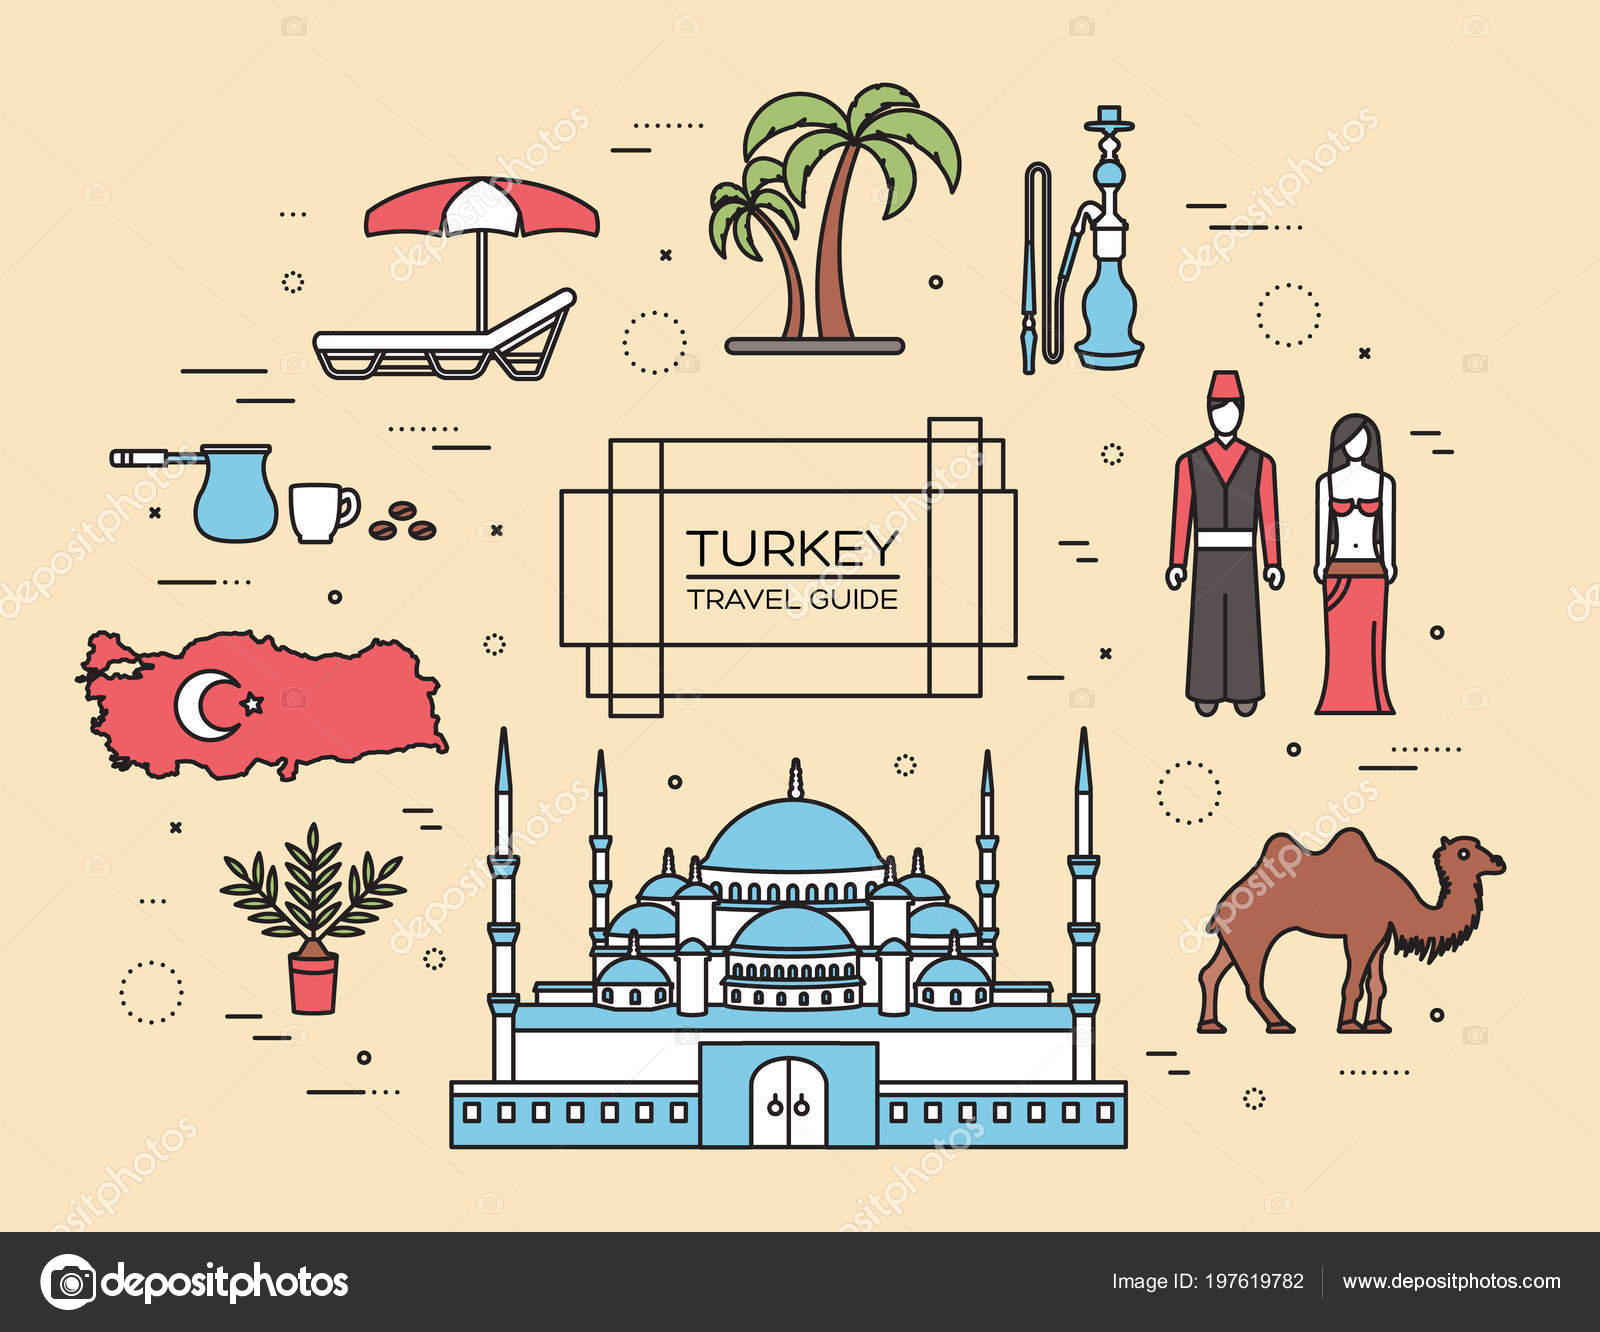 country turkey travel of goods places and features in thin lines